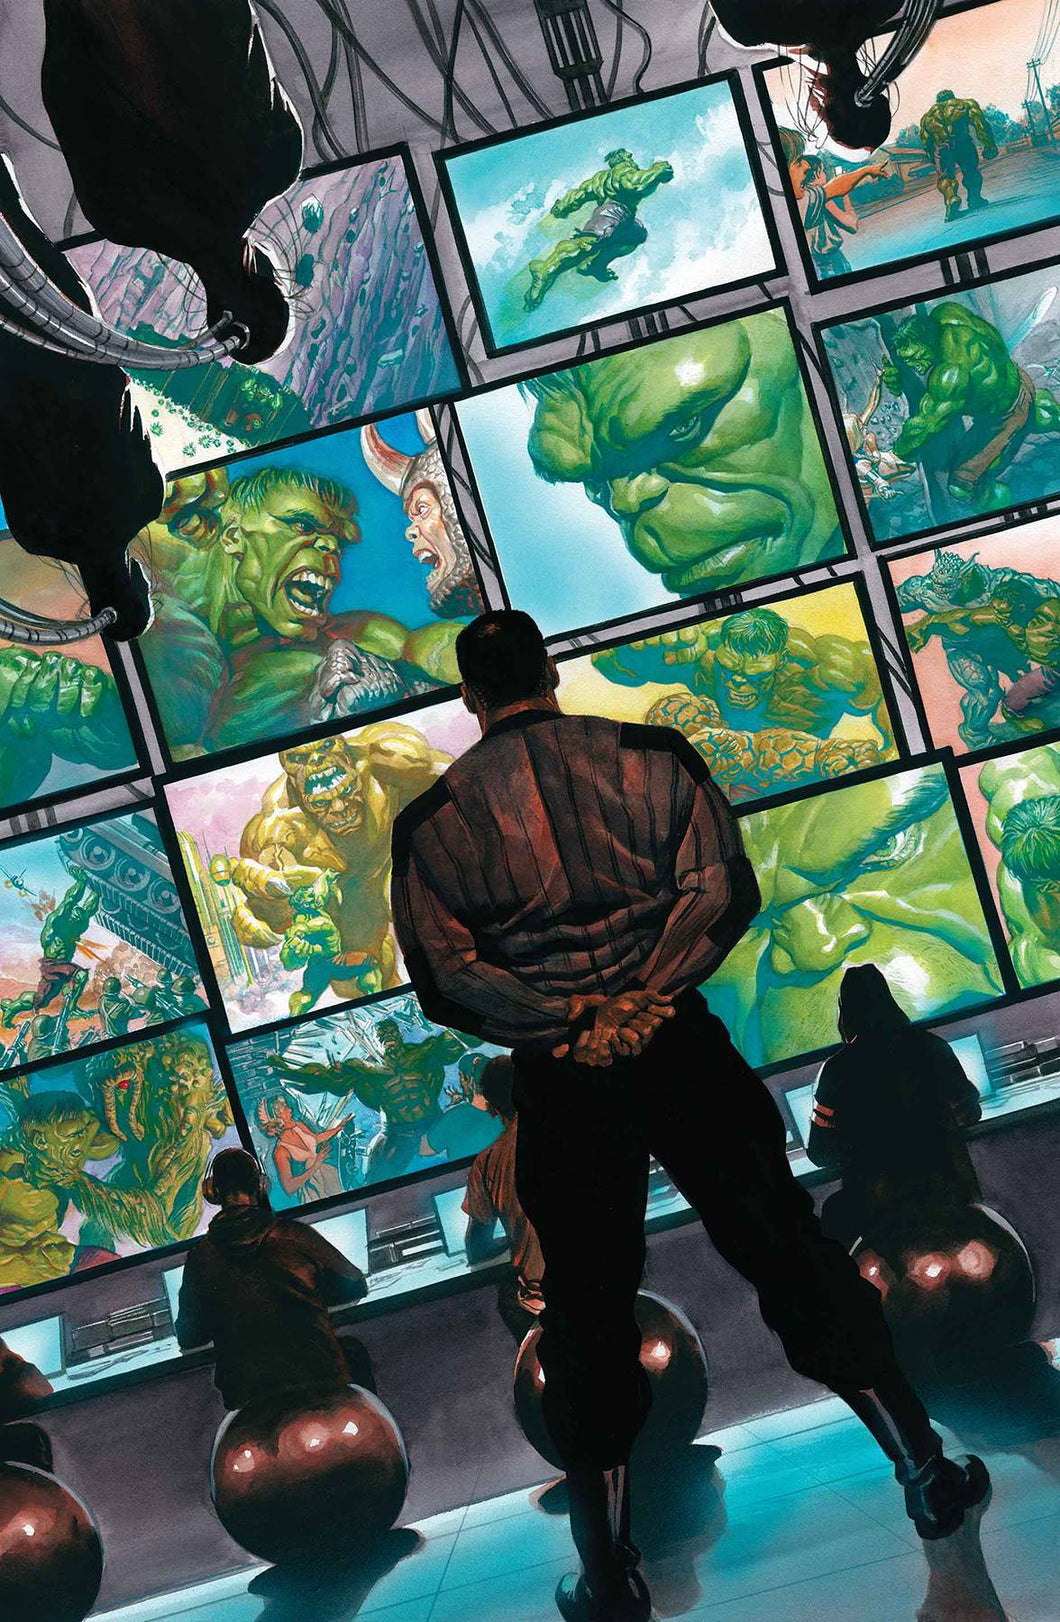 IMMORTAL HULK #21 07/17/19 FOC 06/24/19